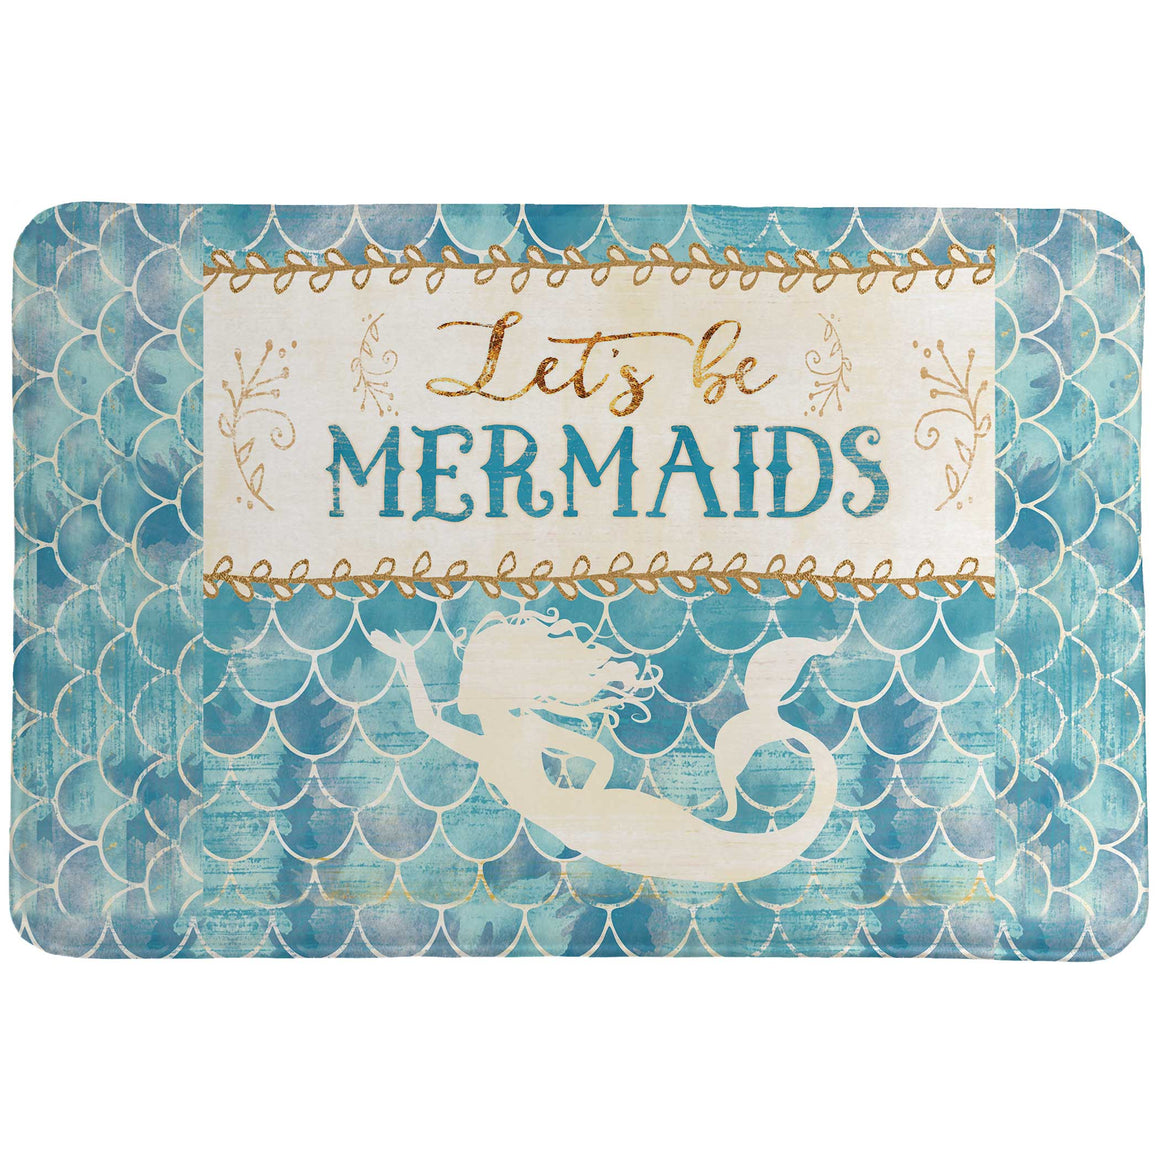 "Laural Home's ""Lets Be Mermaids Memory Foam Rug"" is a fun trendy print of an art inspired mermaid design. Bring the whimsical energy of the sea to your bathroom decor with this fun mermaid design."